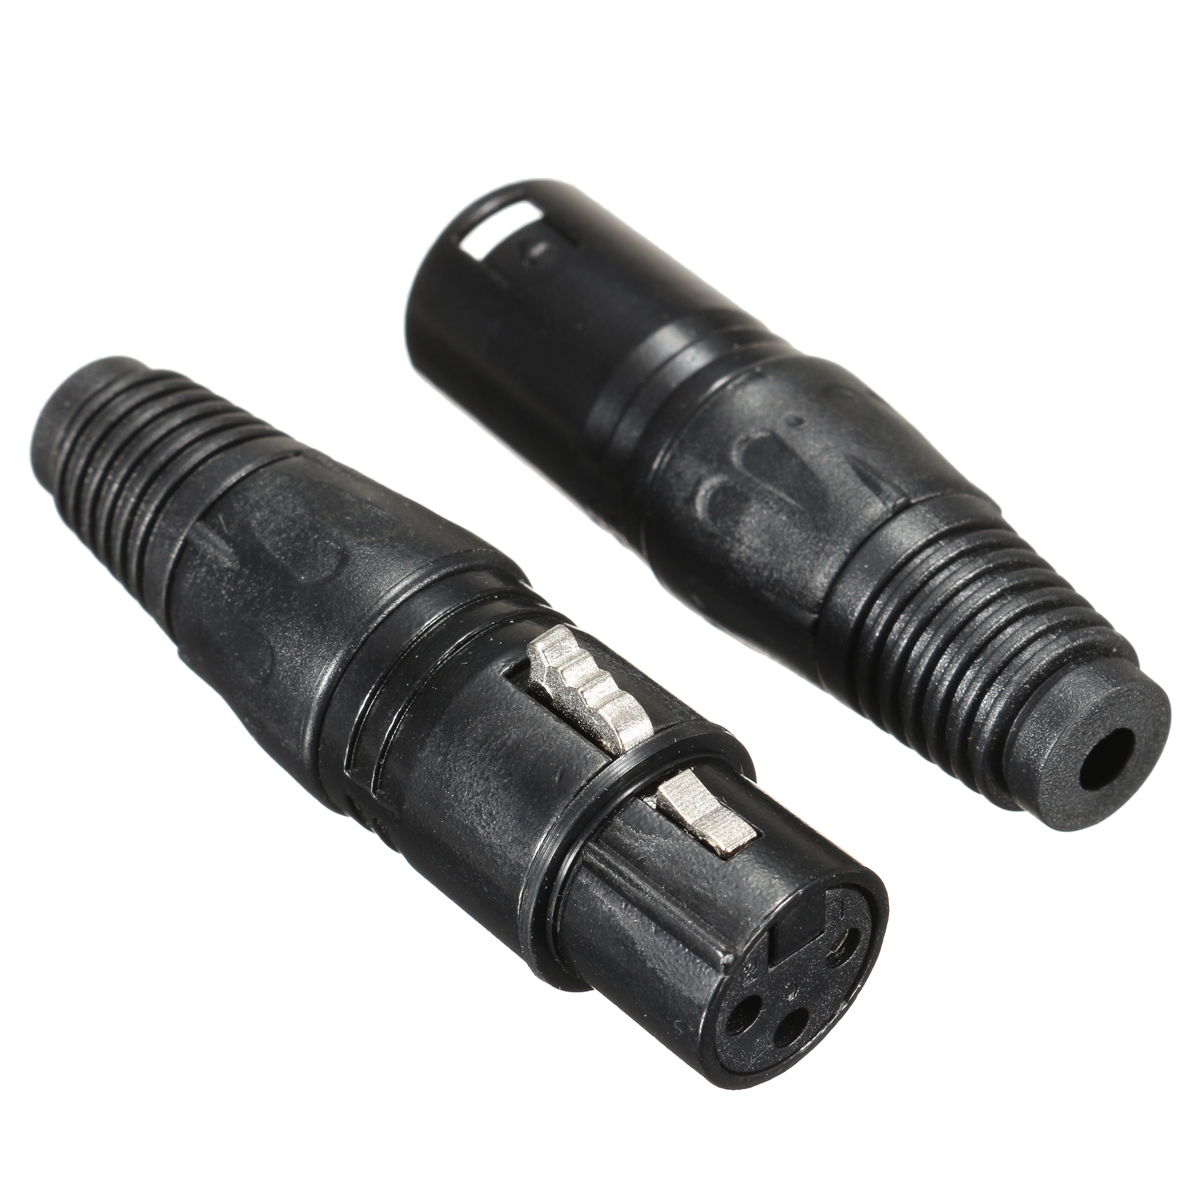 20Pcs XLR 3-Pin 1.8cm Male to 1.5cm Female Connectors MIC Snake Plug Audio Microphone Connector